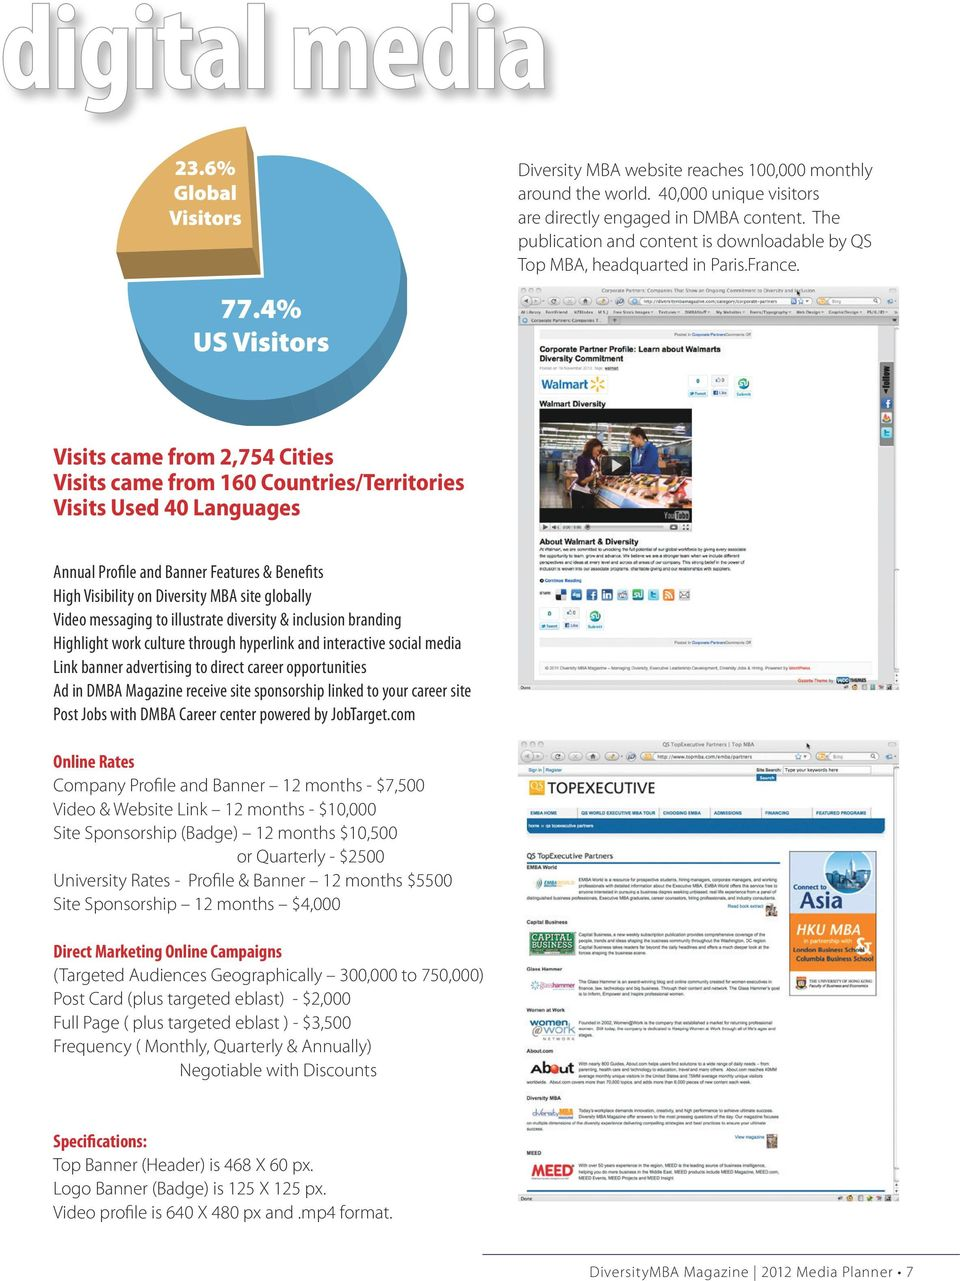 Visits came from 2,754 Cities Visits came from 160 Countries/Territories Visits Used 40 Languages Annual Profile and Banner Features & Benefits High Visibility on Diversity MBA site globally Video